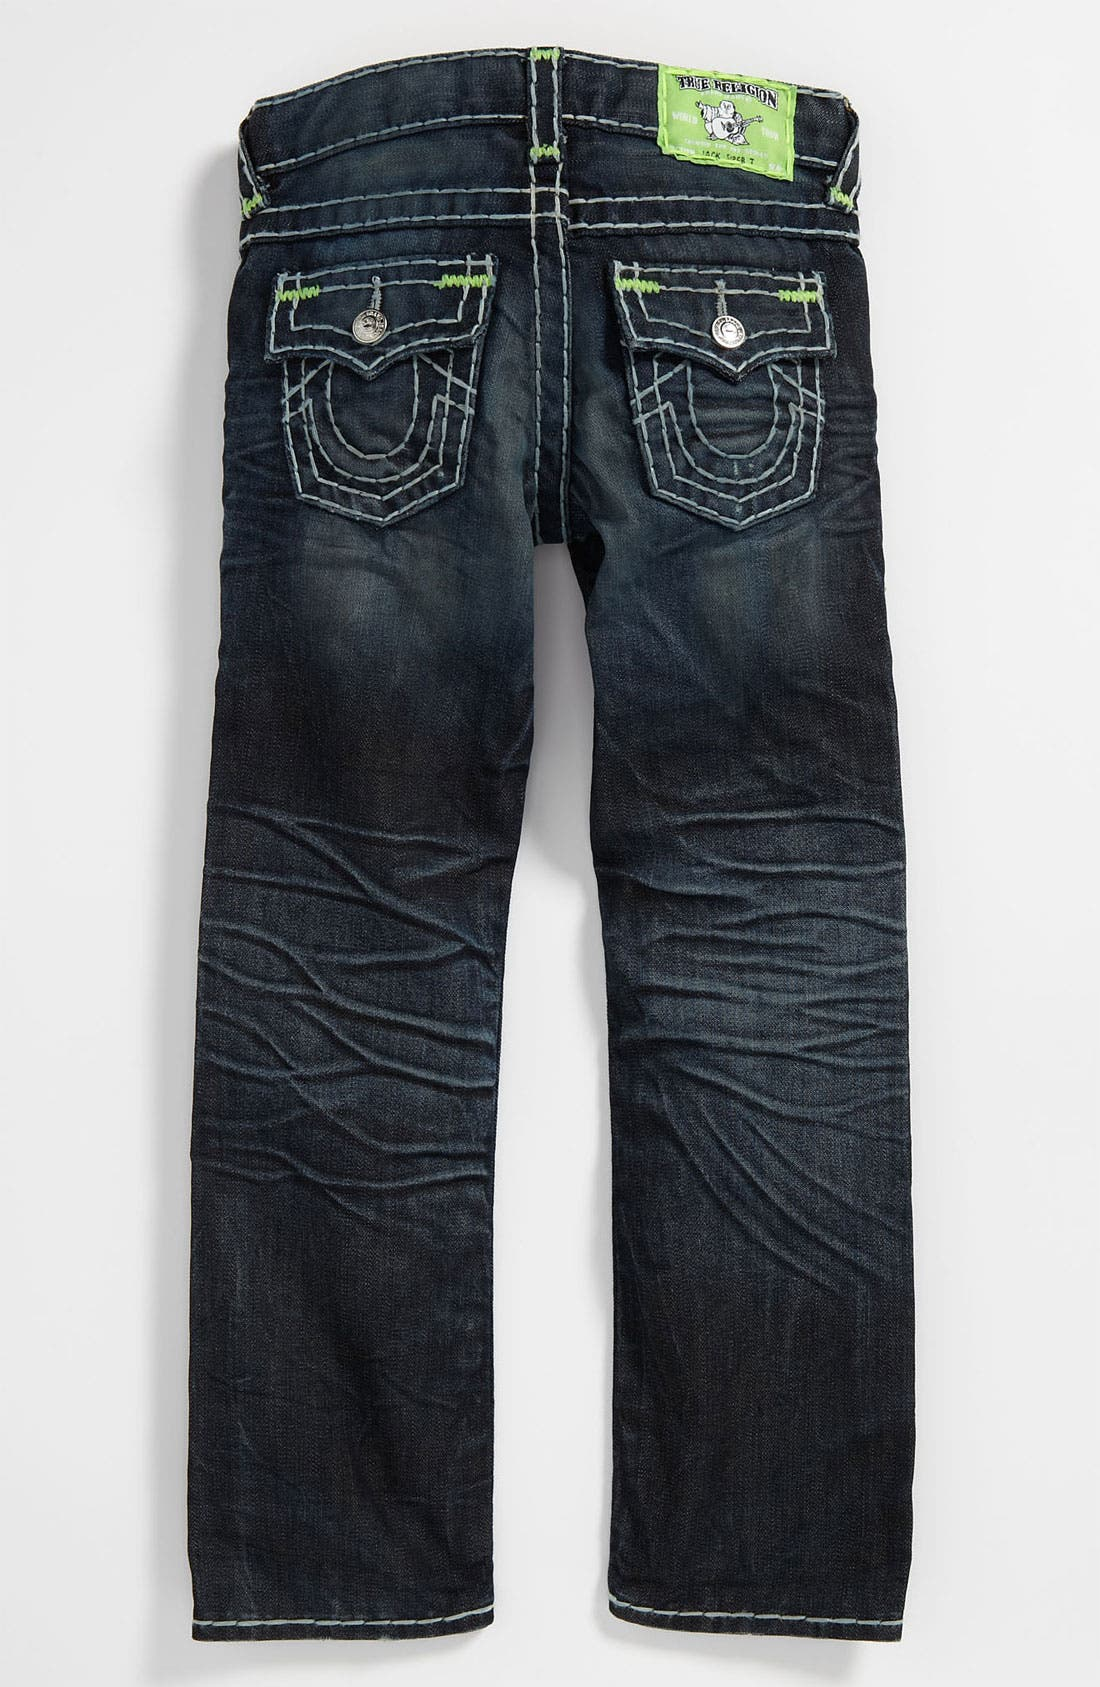 Main Image - True Religion Brand Jeans 'Jack Super T' Jeans (Big Boys)